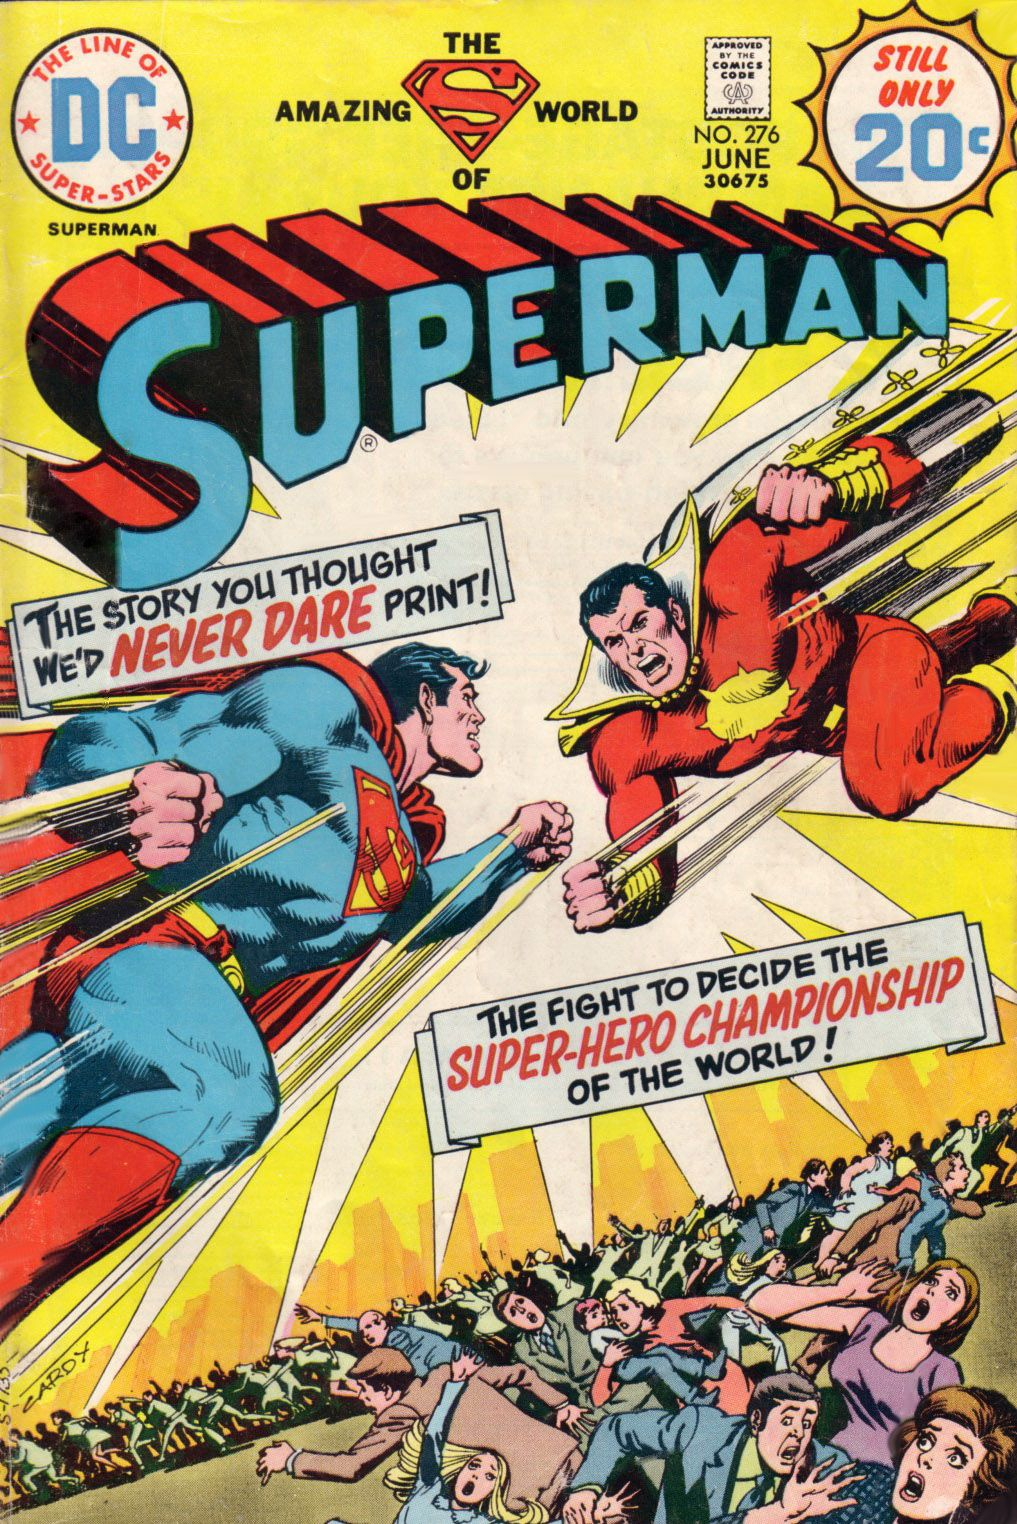 Superman (1939) #276, cover by Nick Cardy.